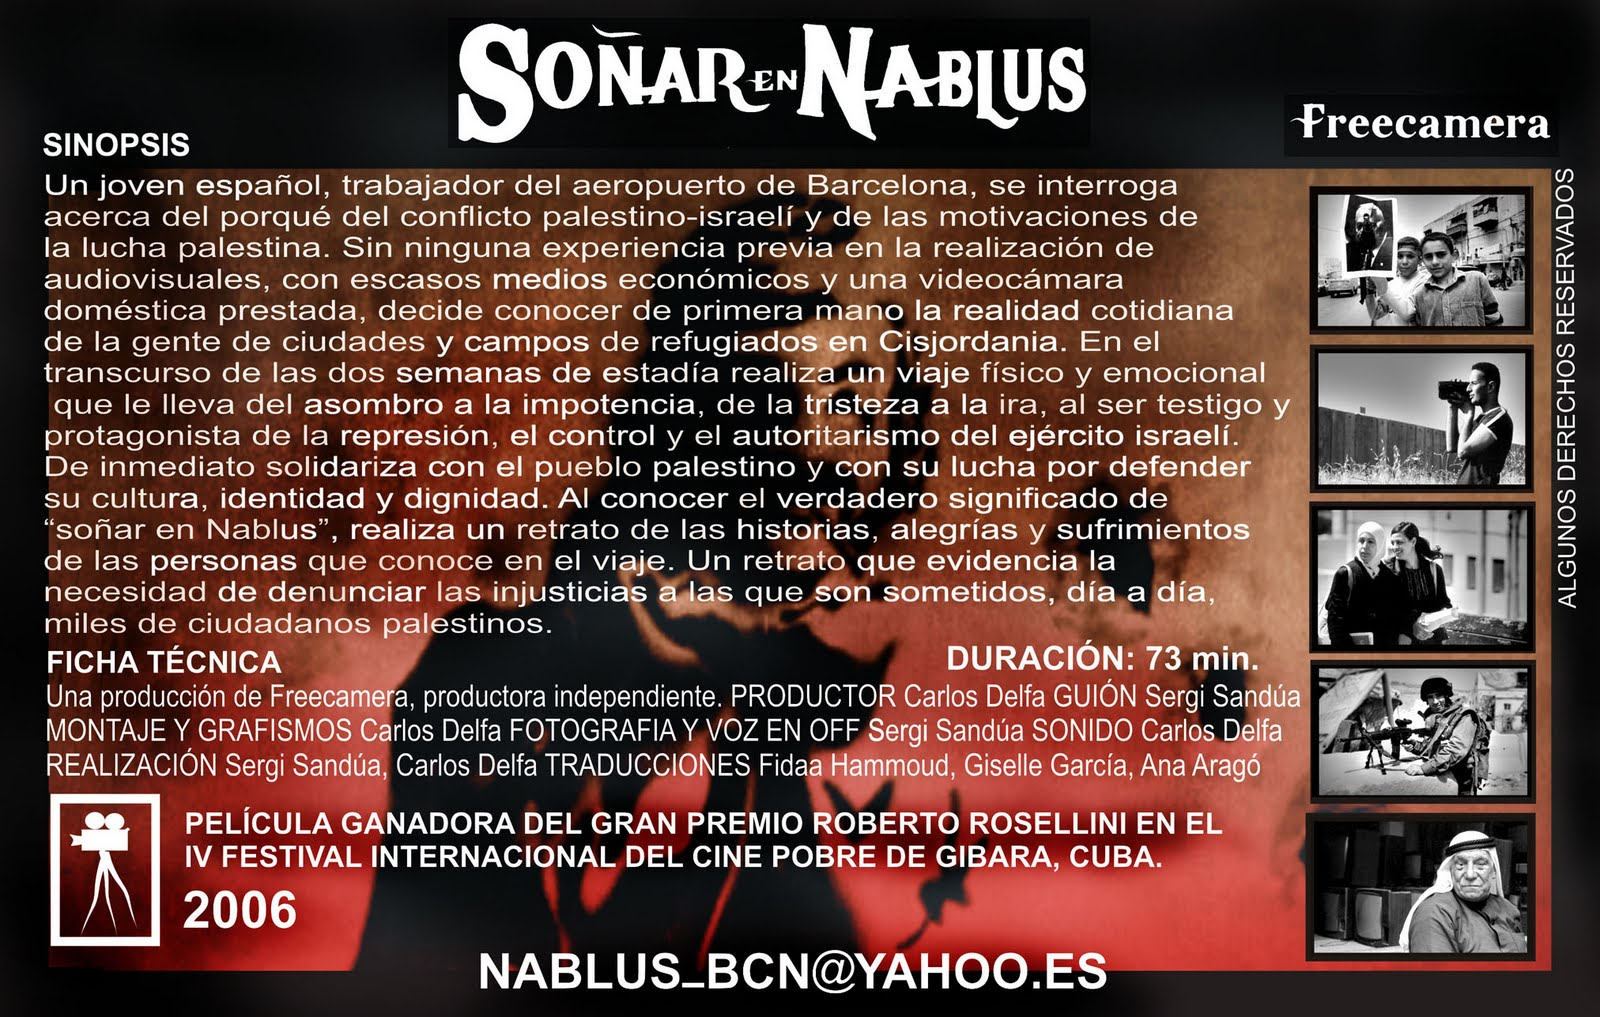 caratula documental Soñar en Nablus (2005)